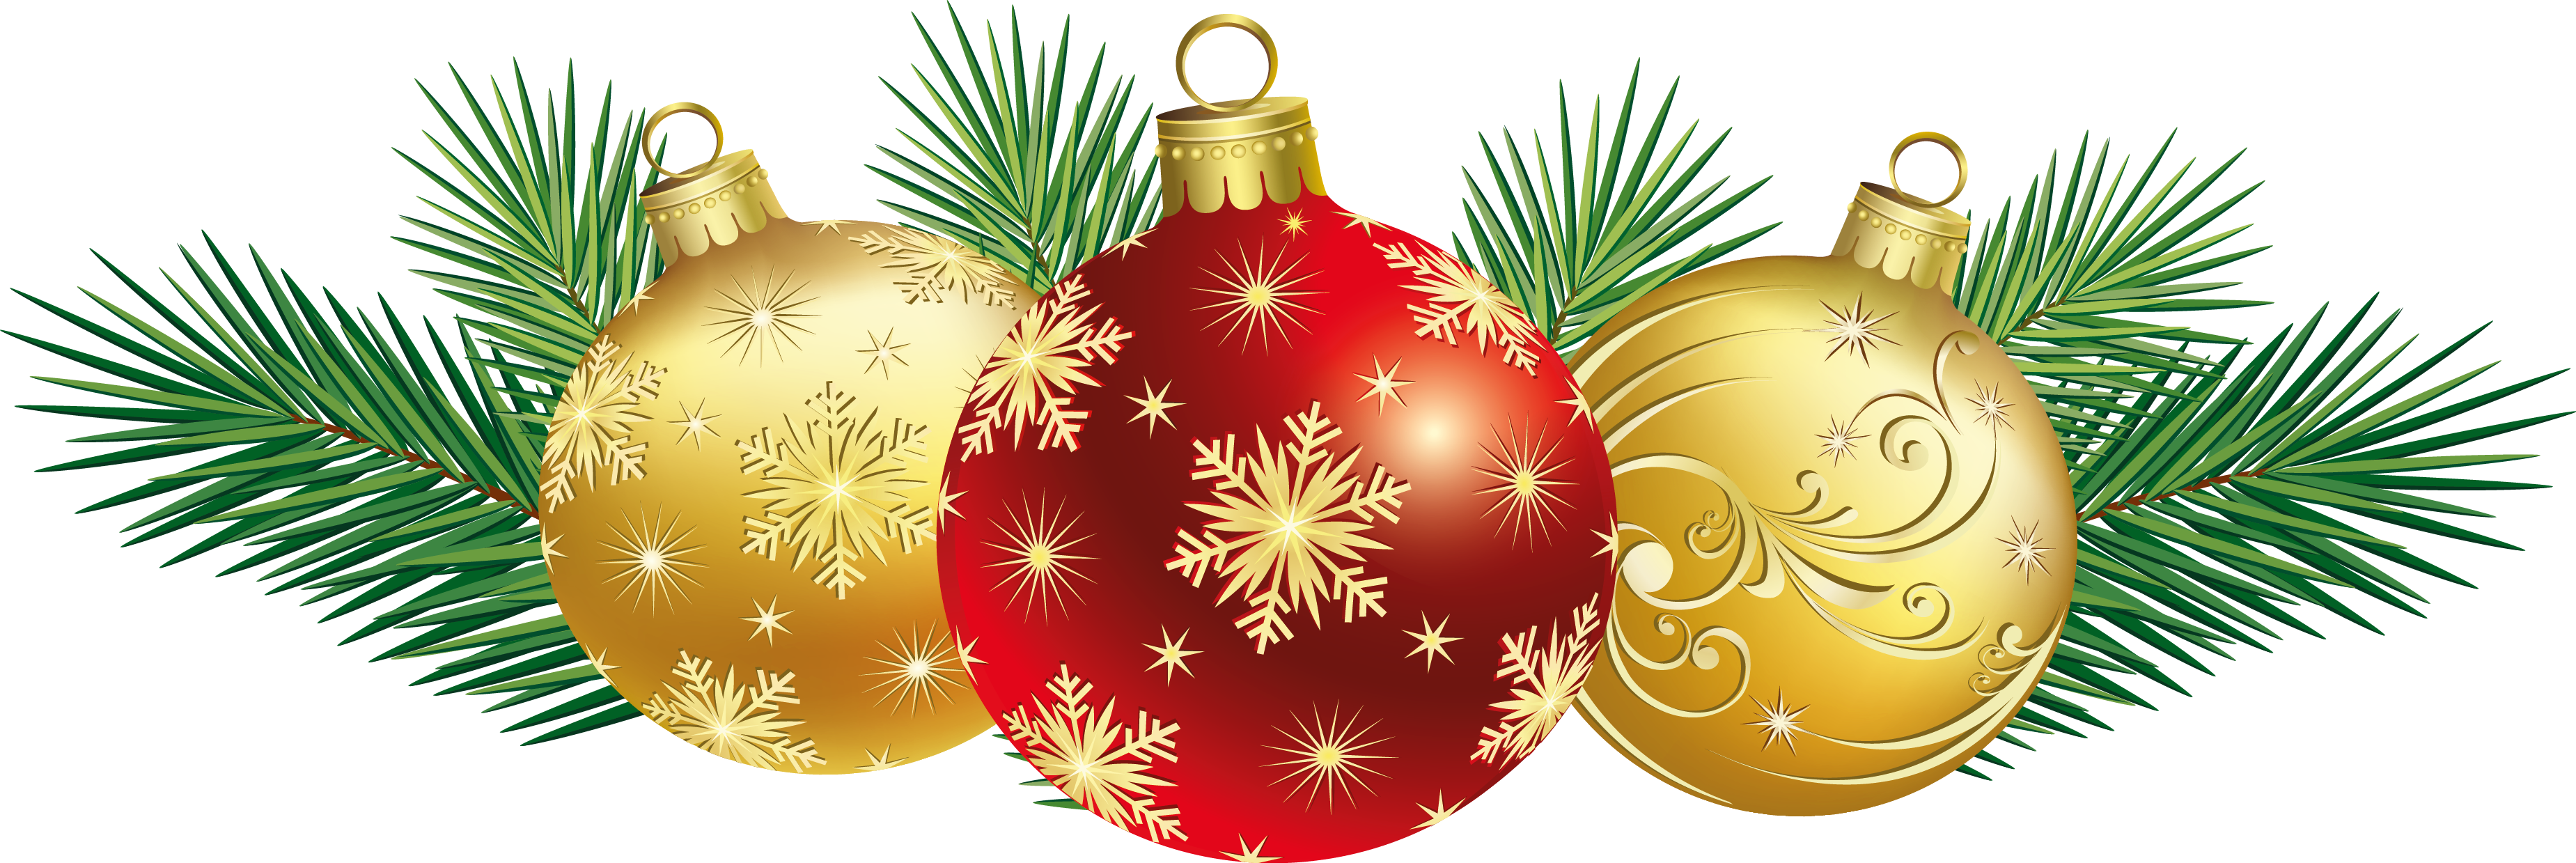 Balls decoration png gallery. Feast clipart christmas eve dinner